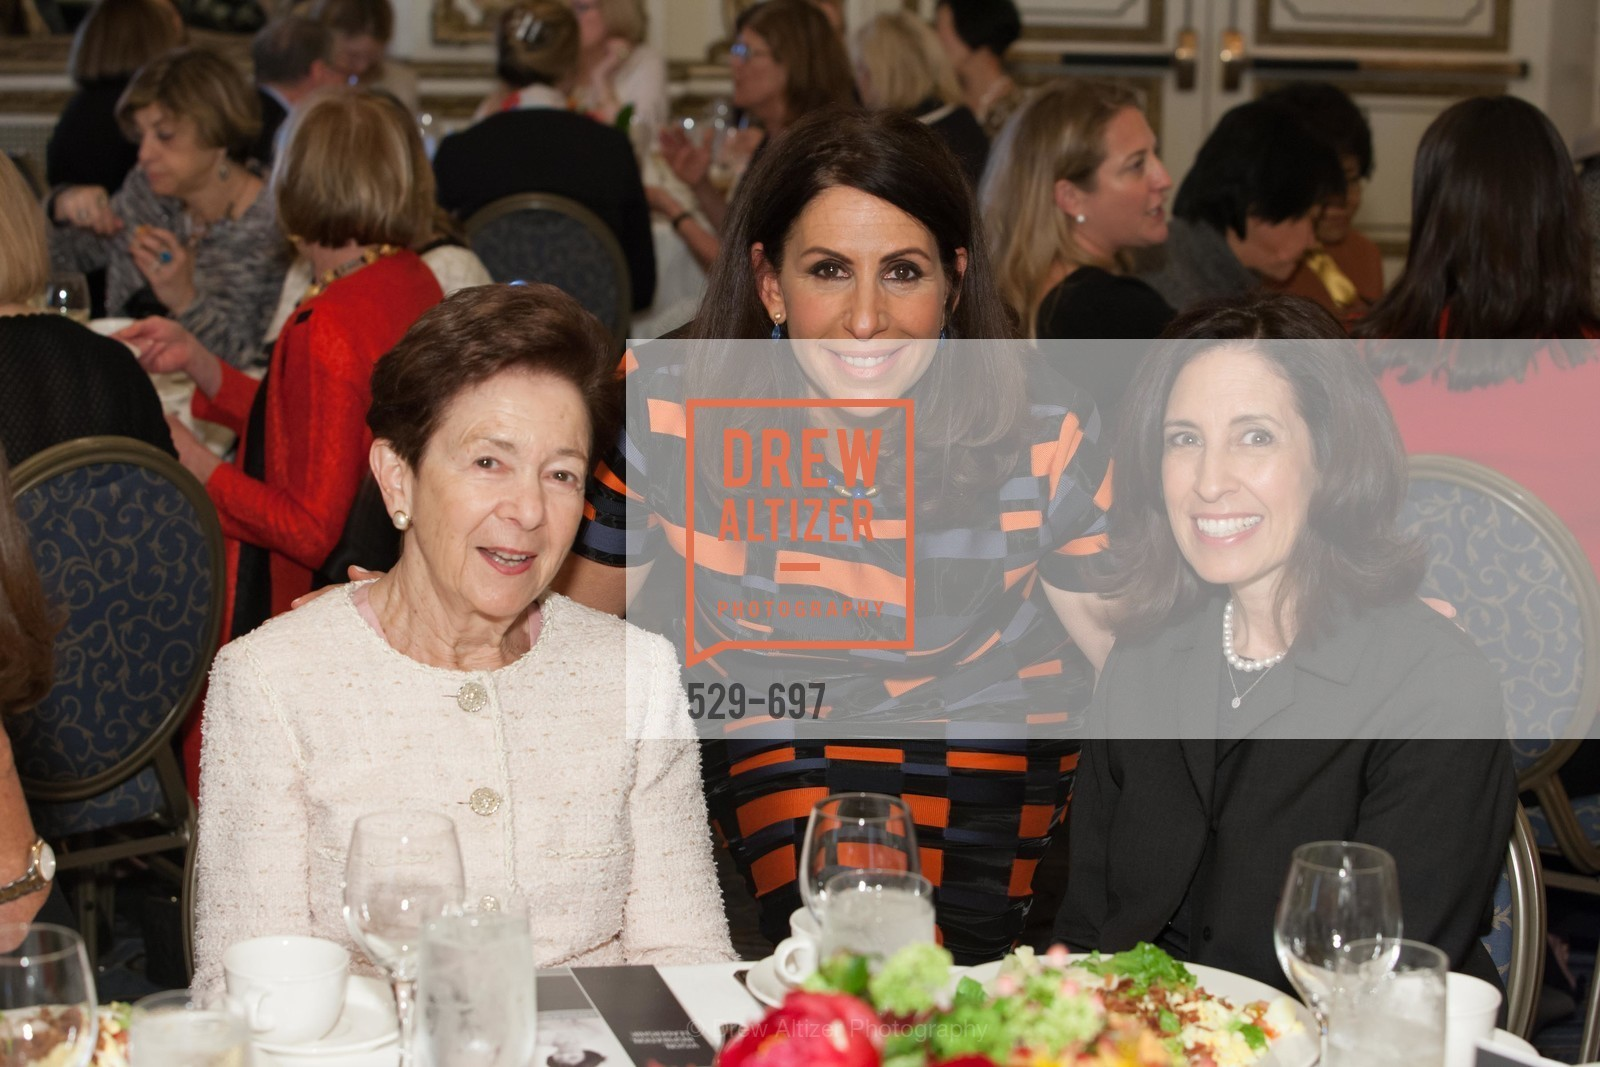 Roselyne Swig, Lisa Grotts, Darian Swig, JUNIOR LEAGUE OF SAN FRANCISCO's WATCH Luncheon, US, May 5th, 2015,Drew Altizer, Drew Altizer Photography, full-service agency, private events, San Francisco photographer, photographer california